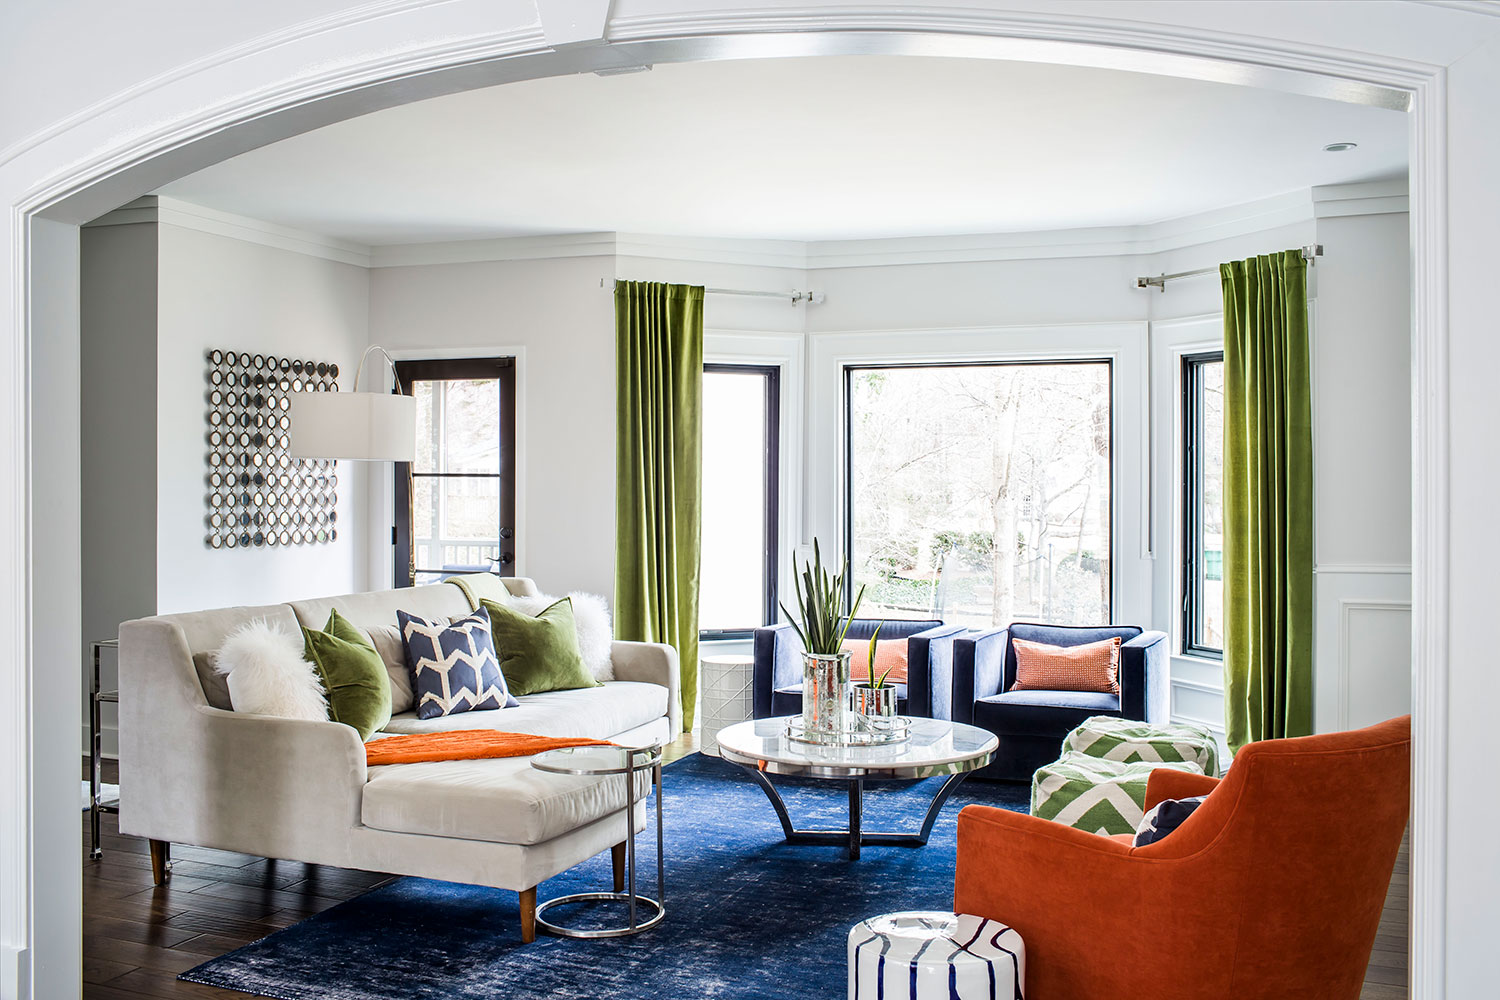 Living room with navy area rug, beige sectional and a mix of midcentury modern and contemporary styling